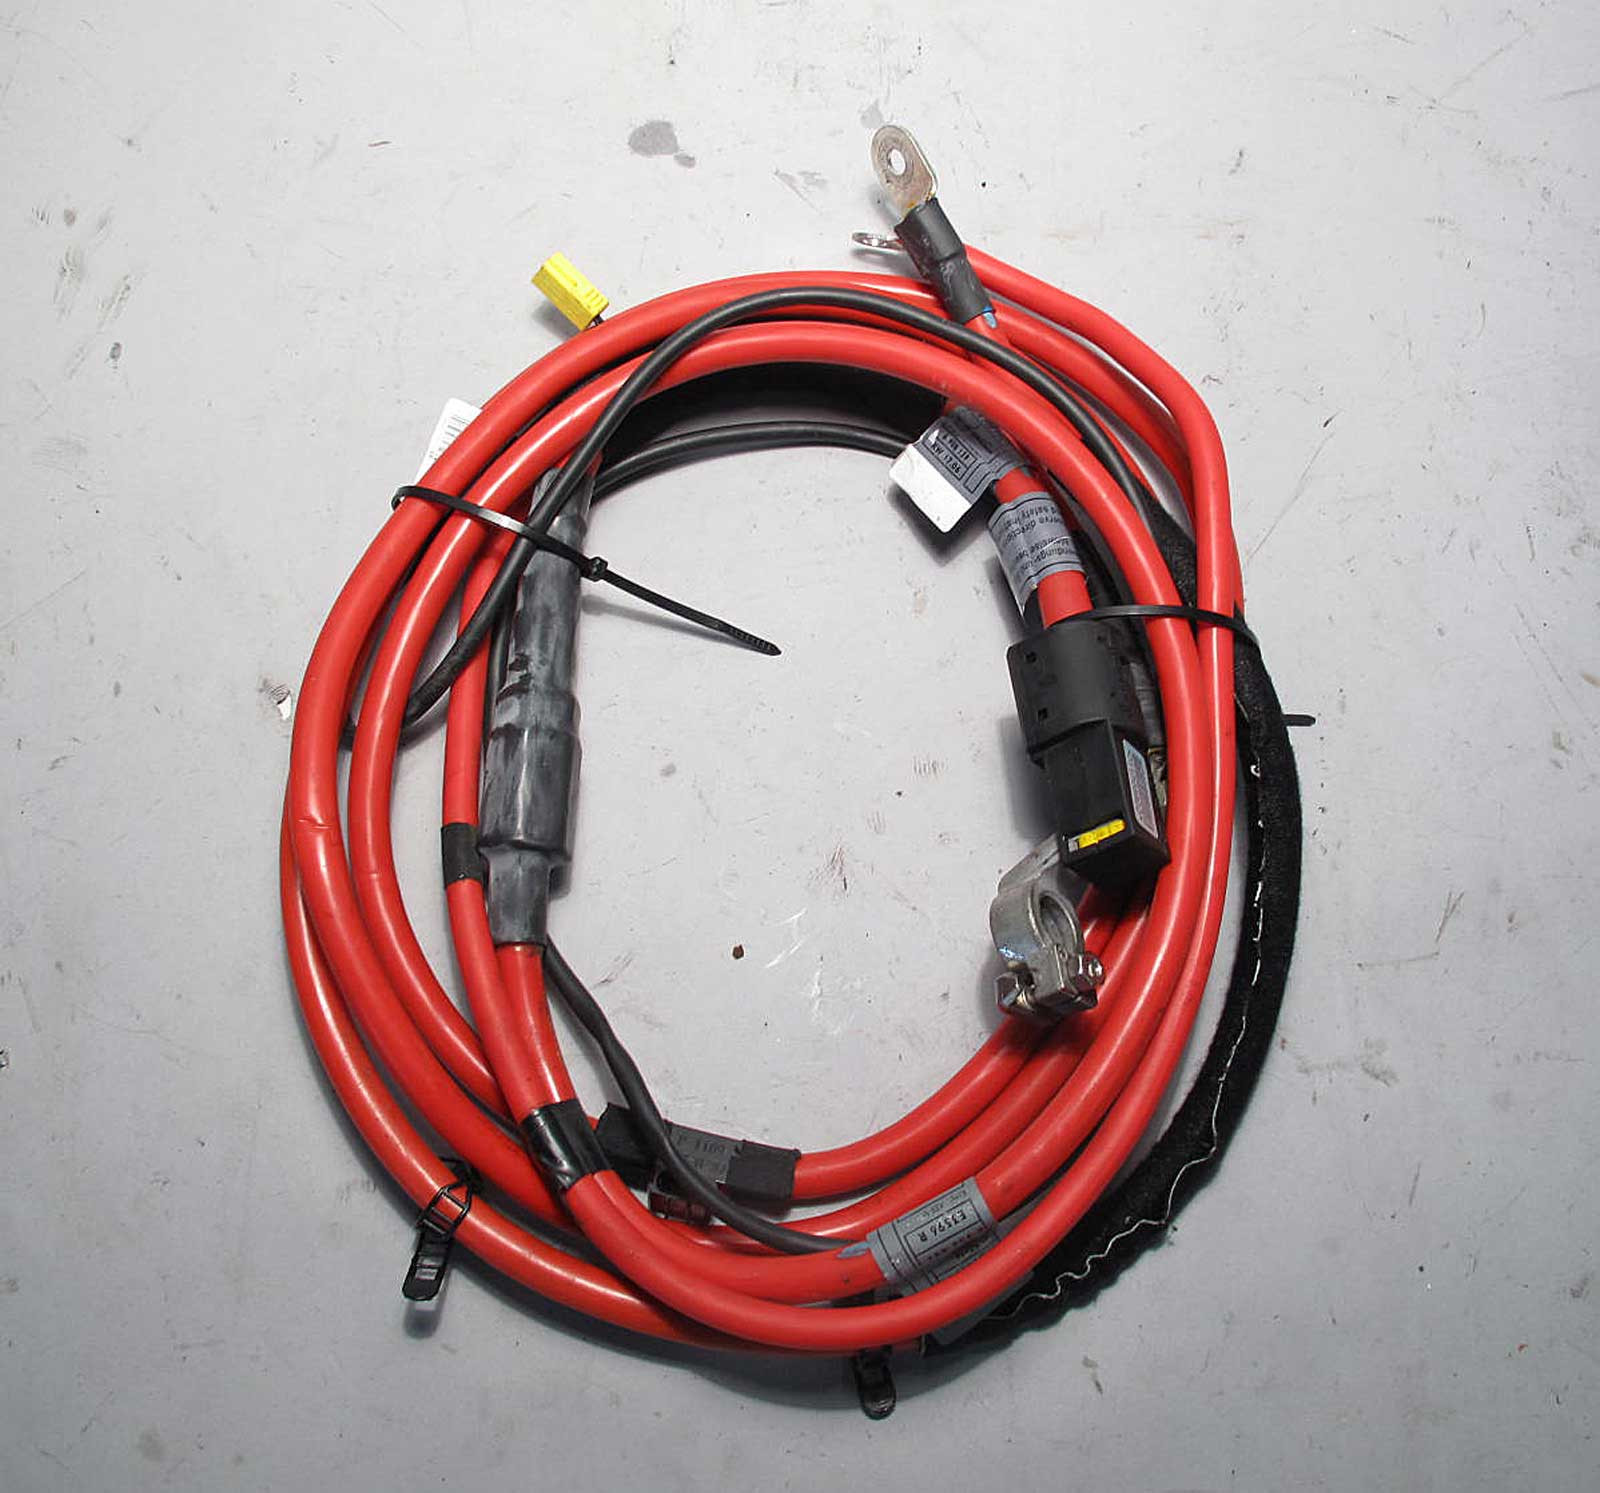 BMW E53 X5 SAV Factory Positive Red Battery Cable Complete w Terminal  2001-2006 - 7543